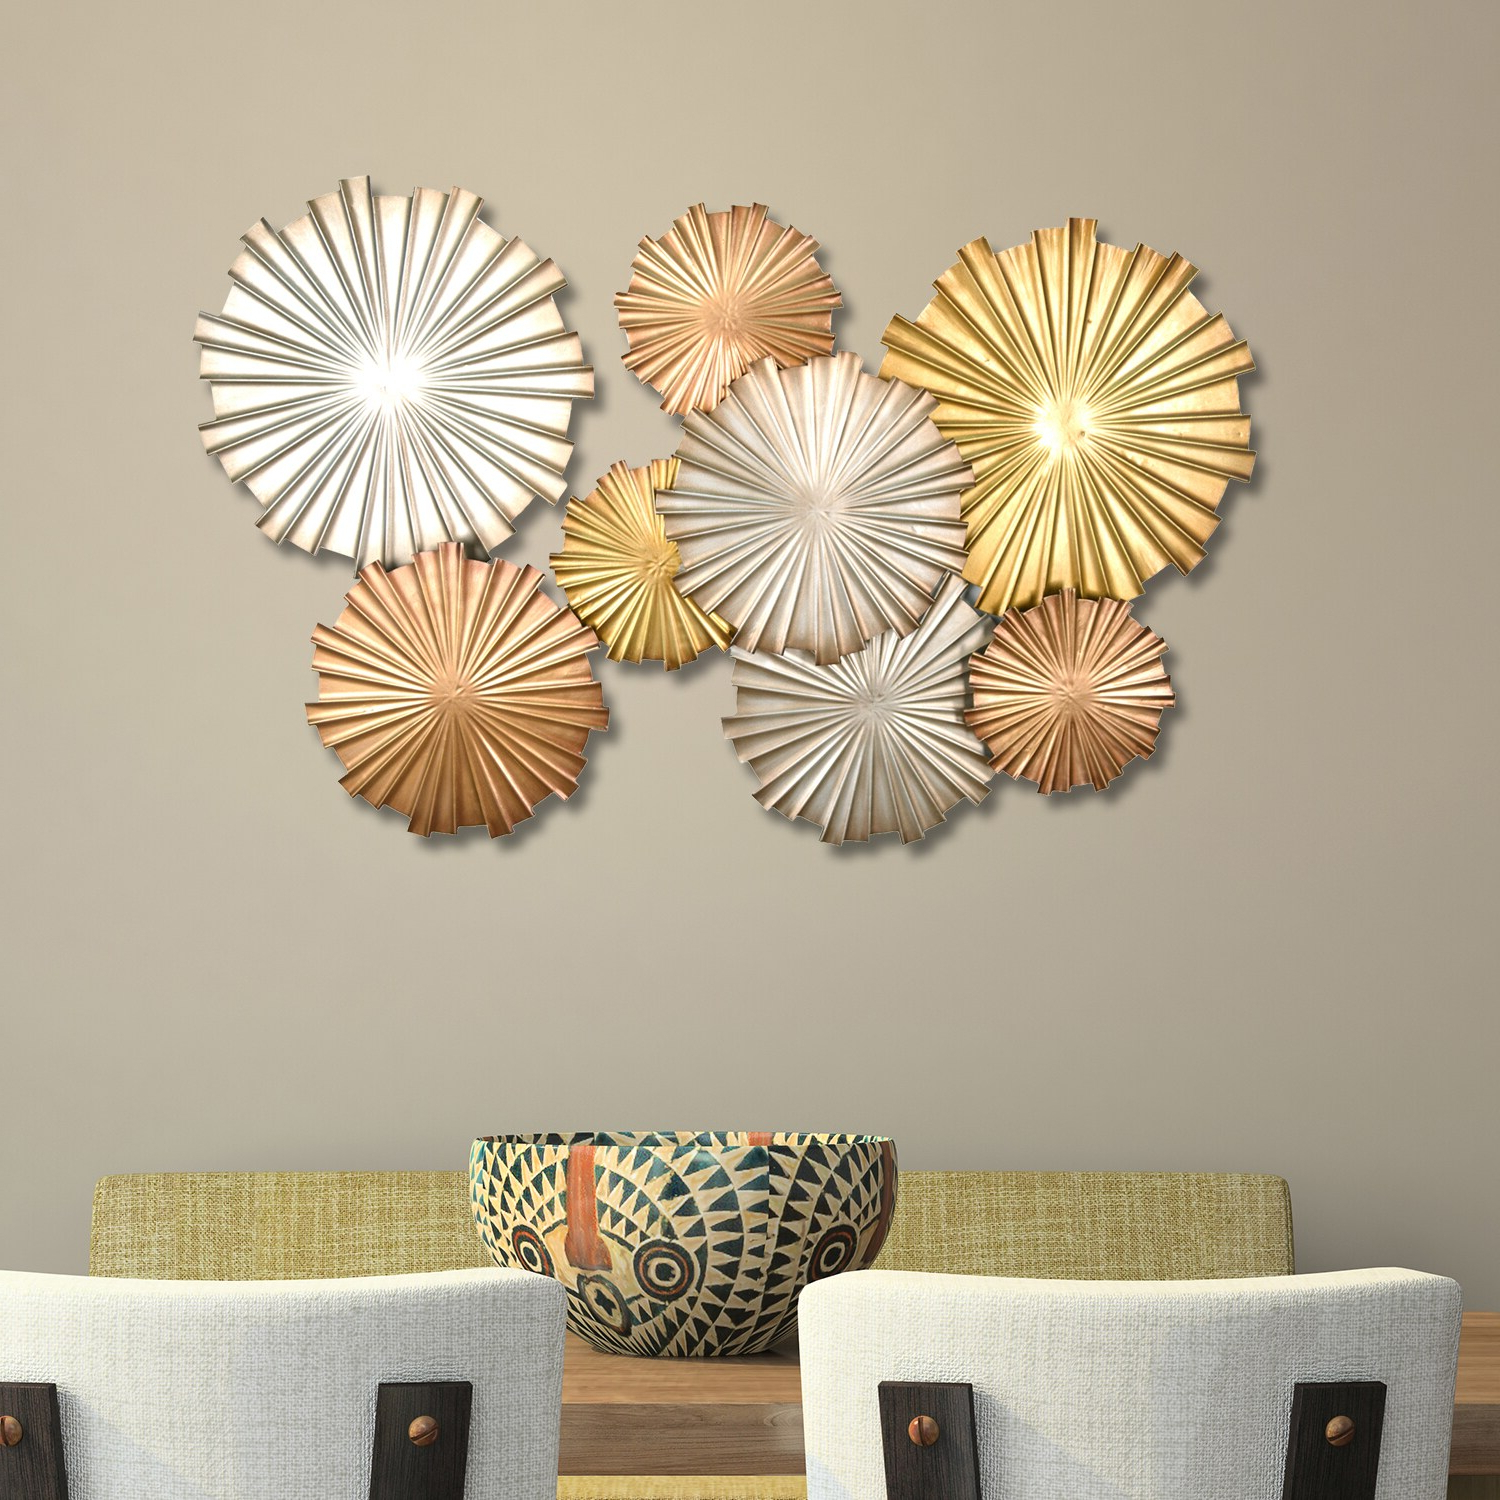 Most Recent The Curated Nomad Sybil Multi Metallic Circles Wall Decor Regarding Multi Circles Wall Décor (View 7 of 20)